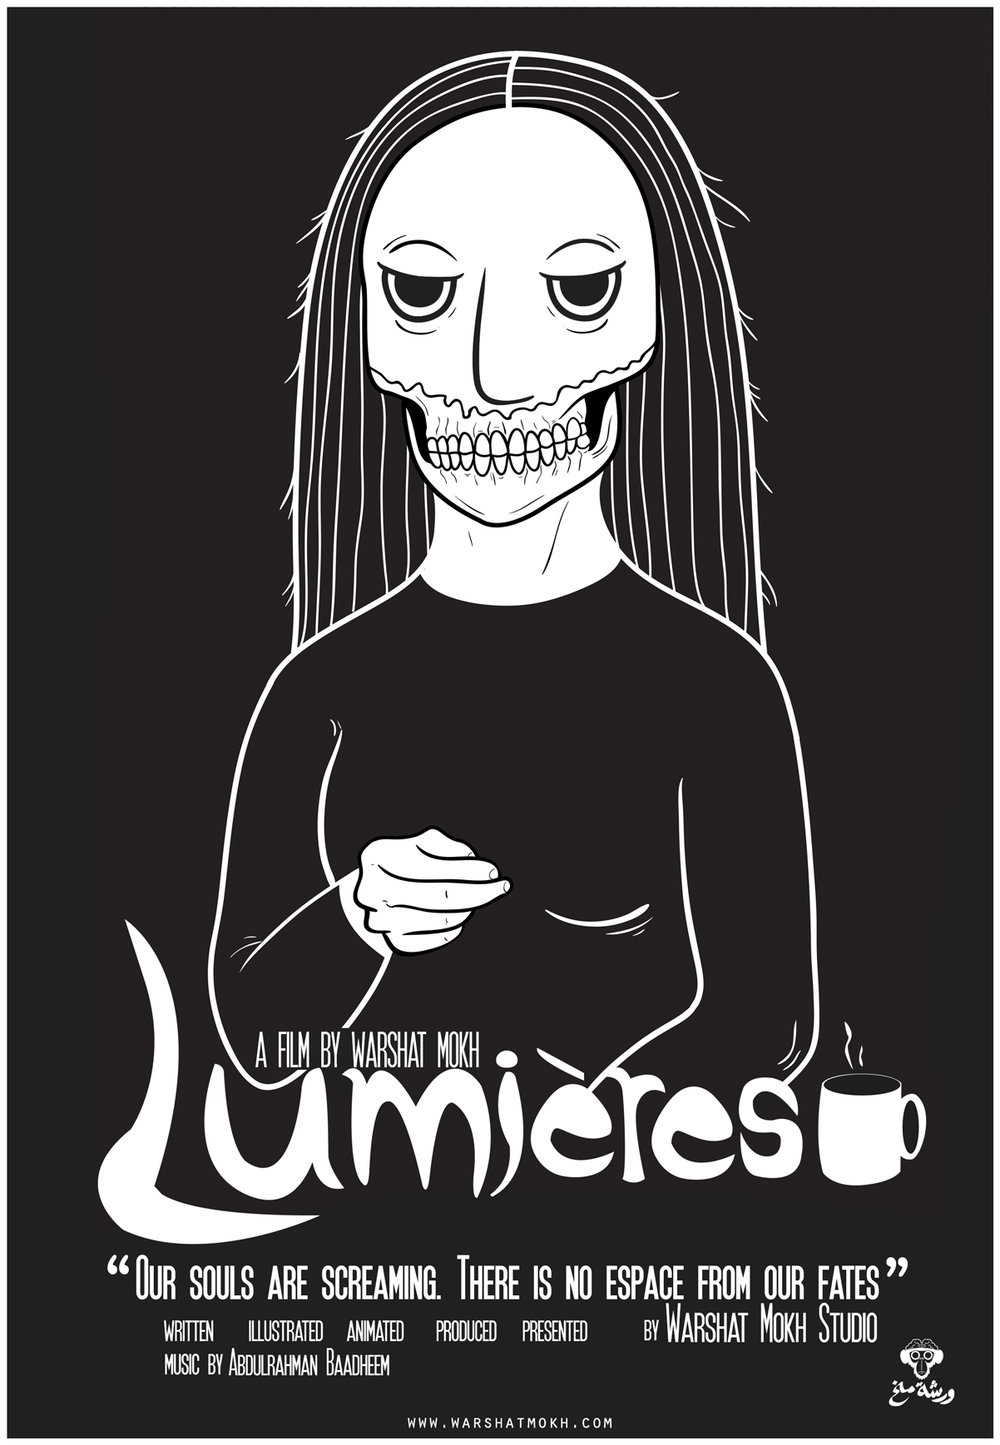 SHORT FILM: LUMIERES - A dark black room where there are three women talking and expressing their views of the world. The characters are Samar, Sawsan and Salma who represent Existentialism, Absurdism, and Nihilism. • WATCH TEASER